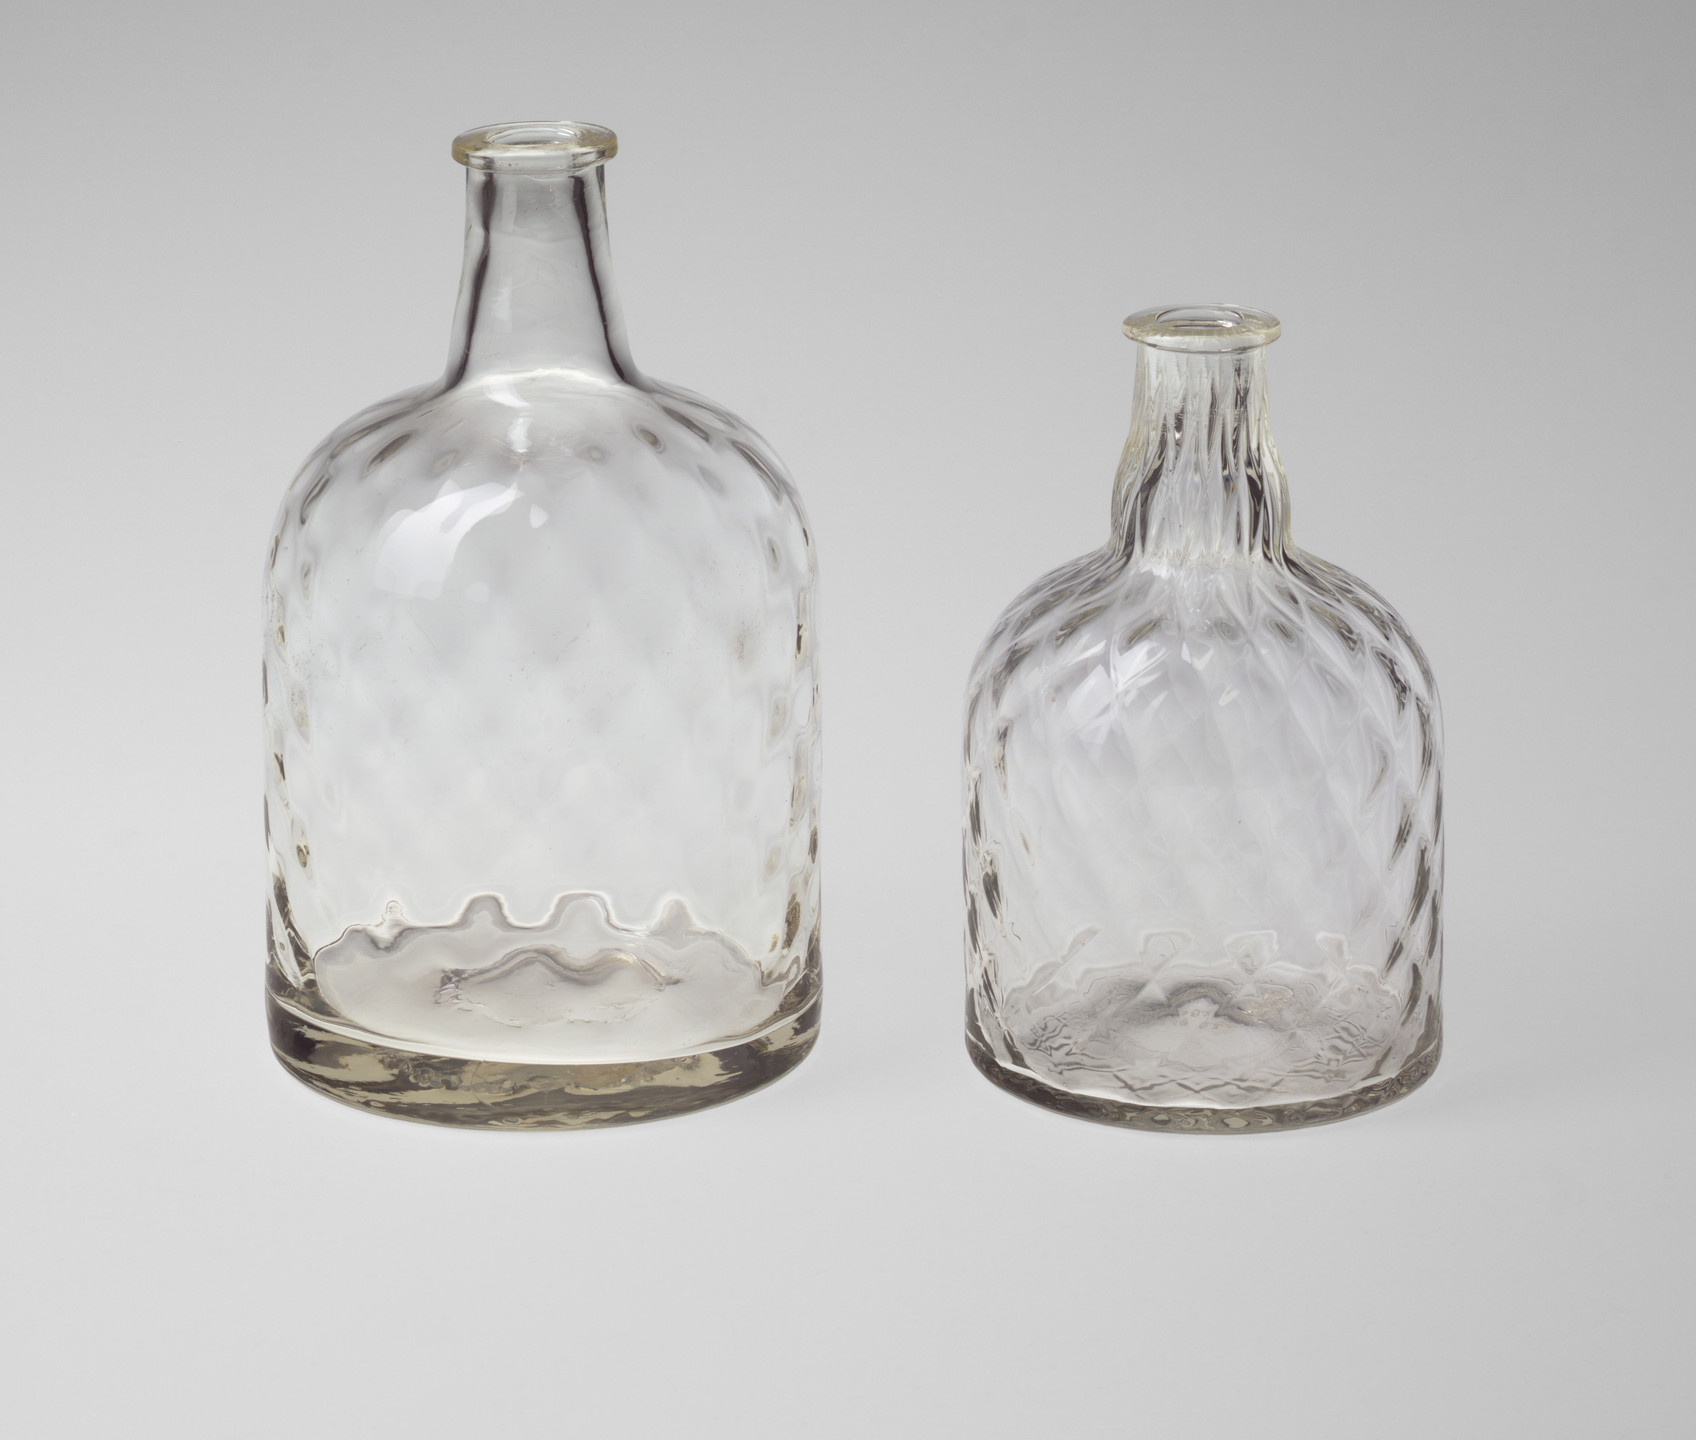 Richard Riemerschmid. Bottles. 1912